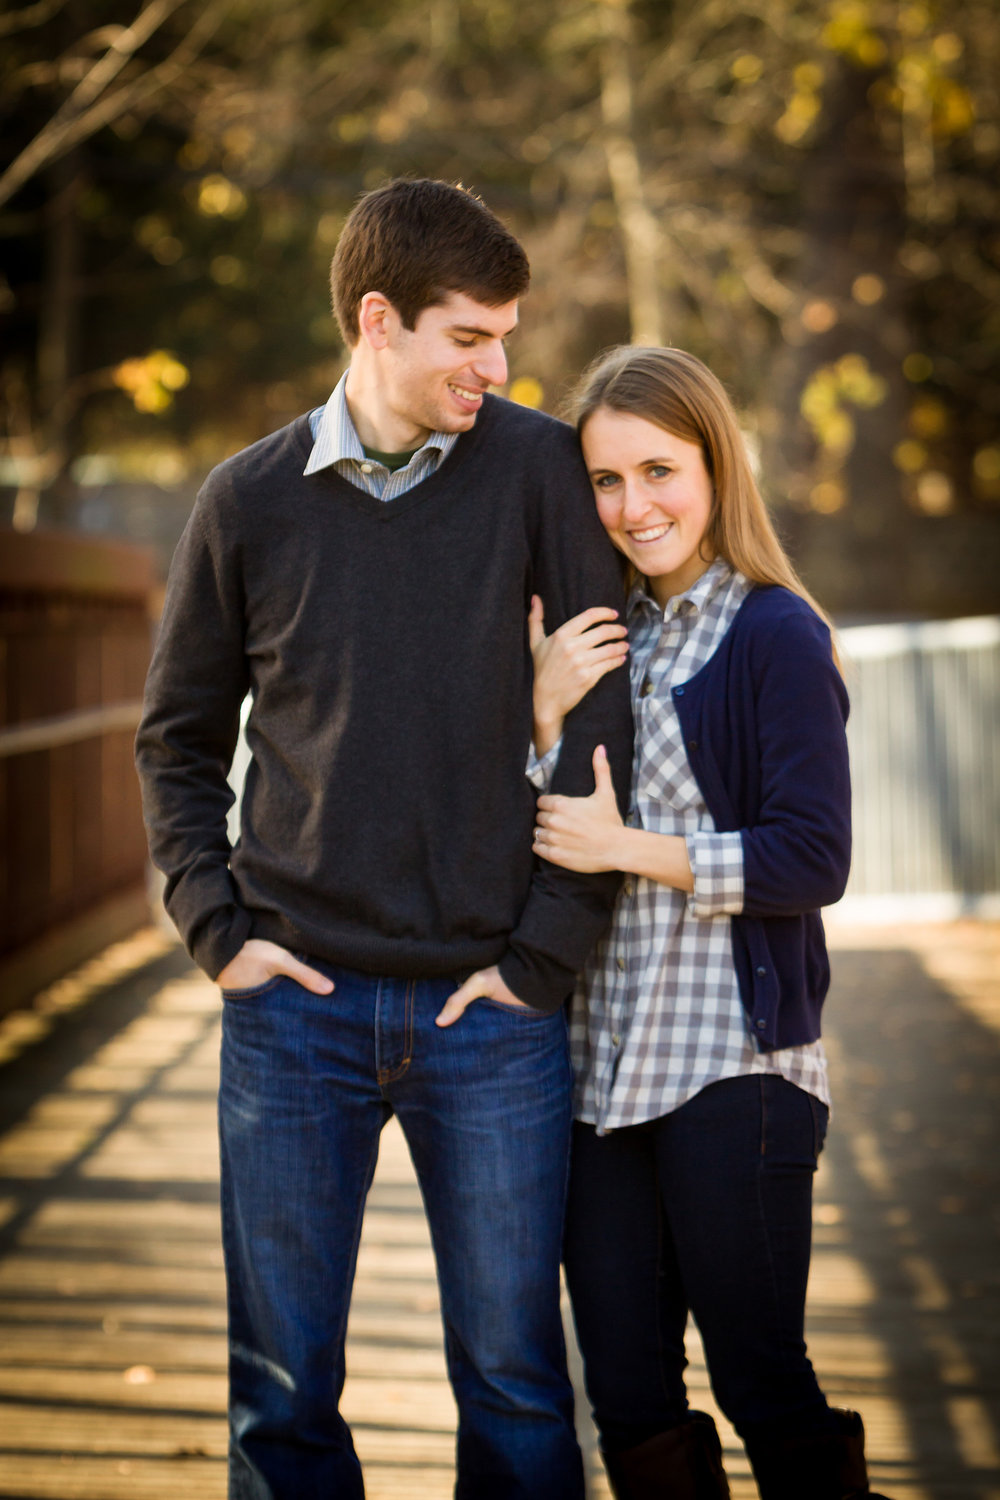 bergen_county_new_jersey_engagement_photography_0007.jpg